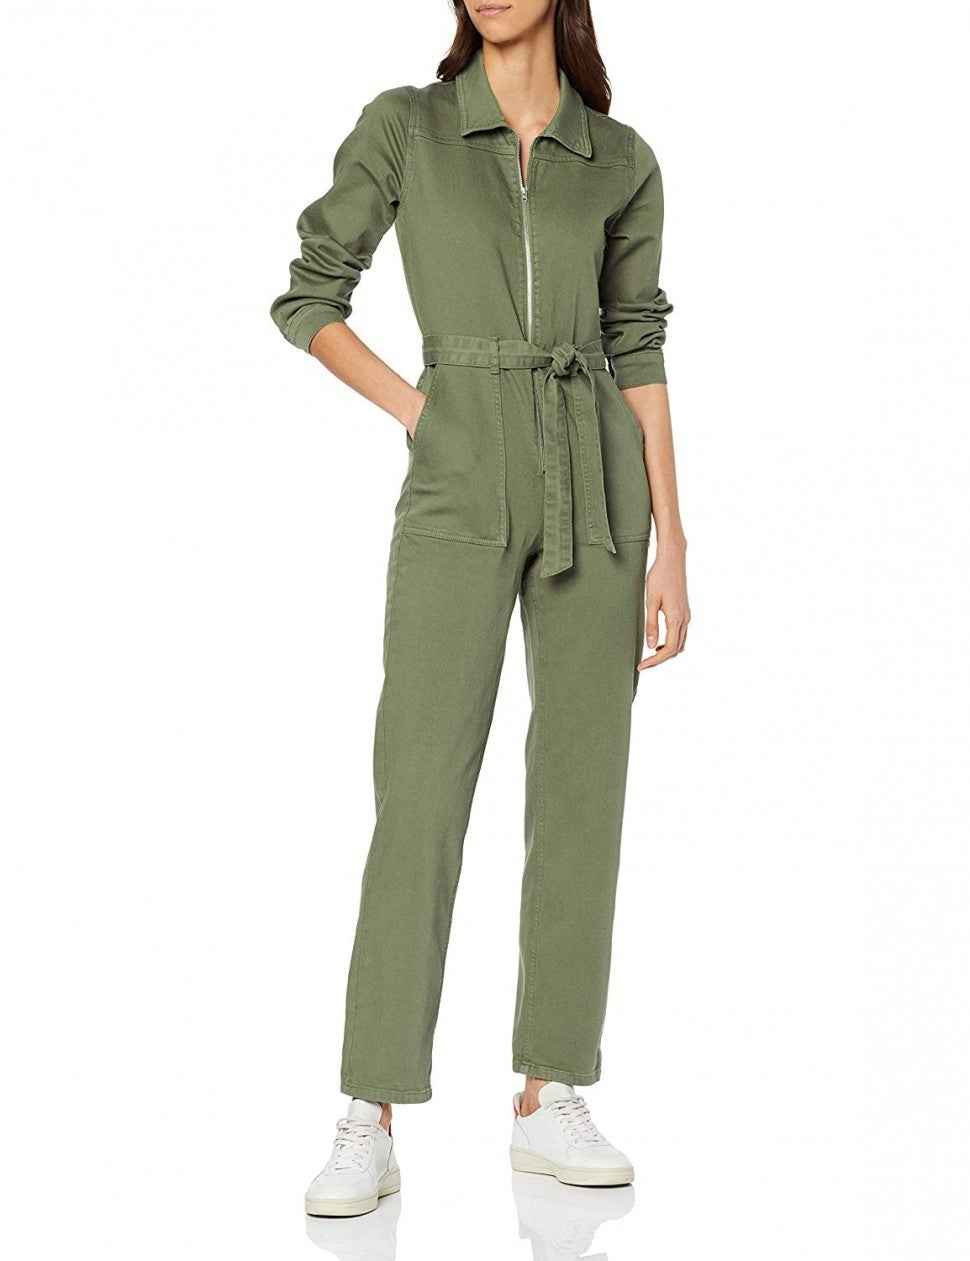 Find Amazon brand green utility jumpsuit